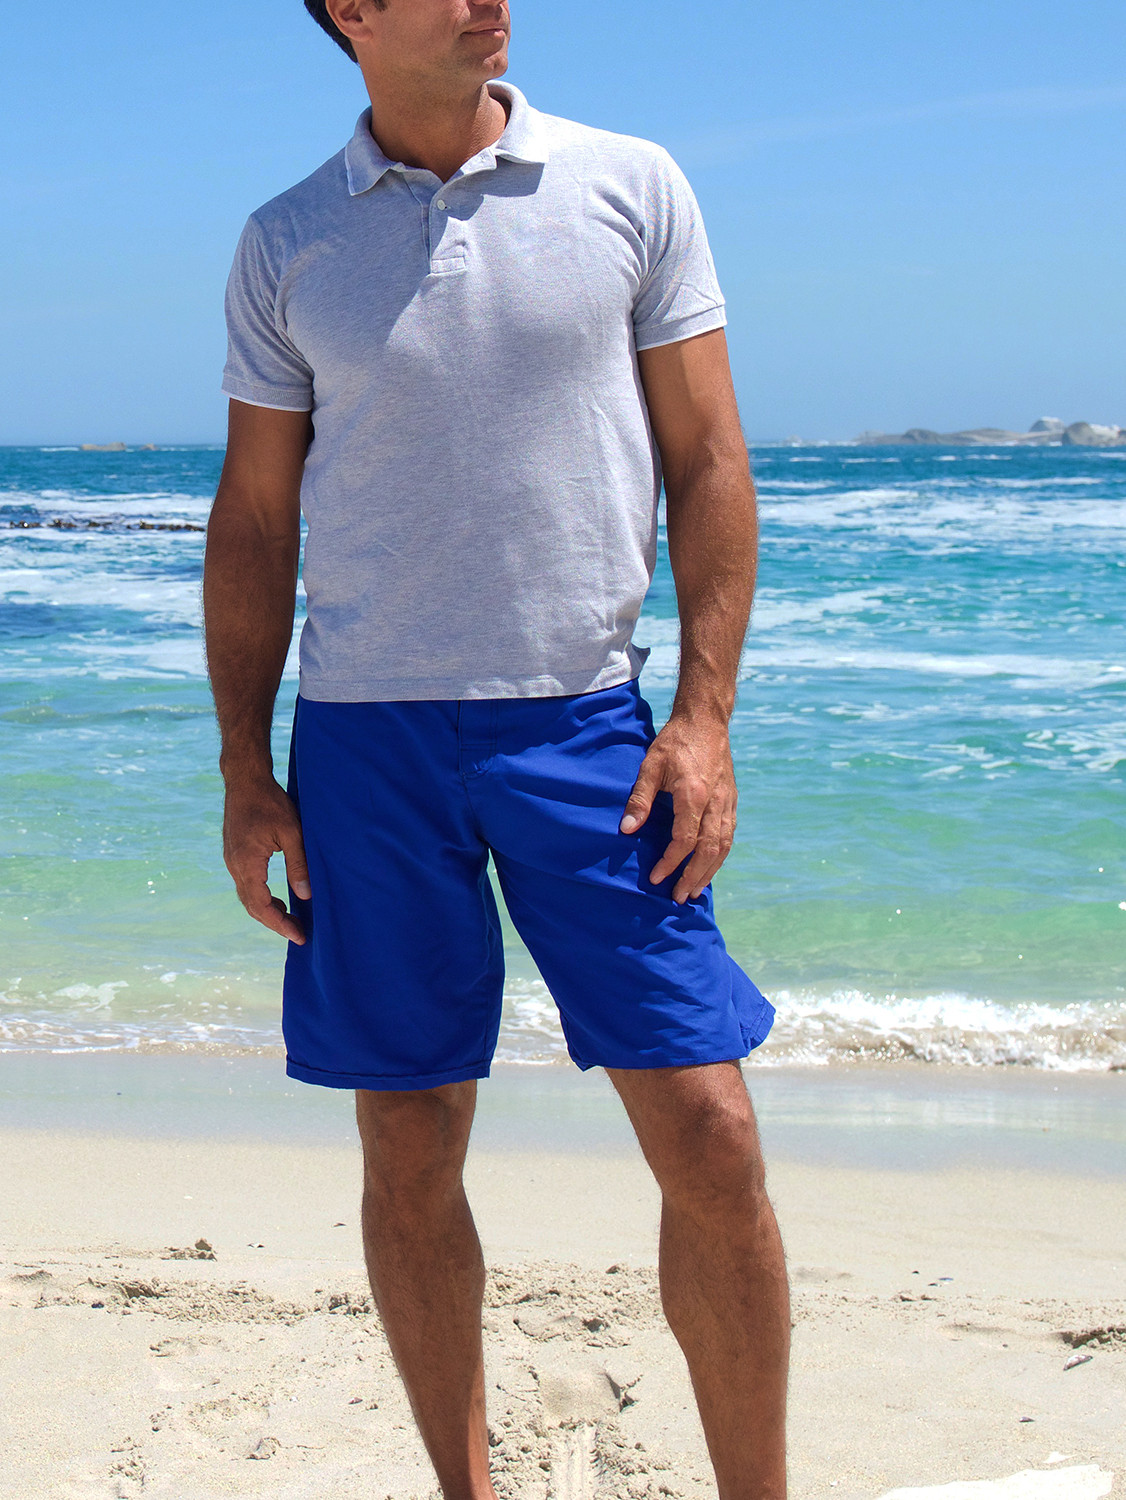 Men's outfit idea for 2021 with blue plain short-sleeved polo, blue swimwears. Suitable for summer.